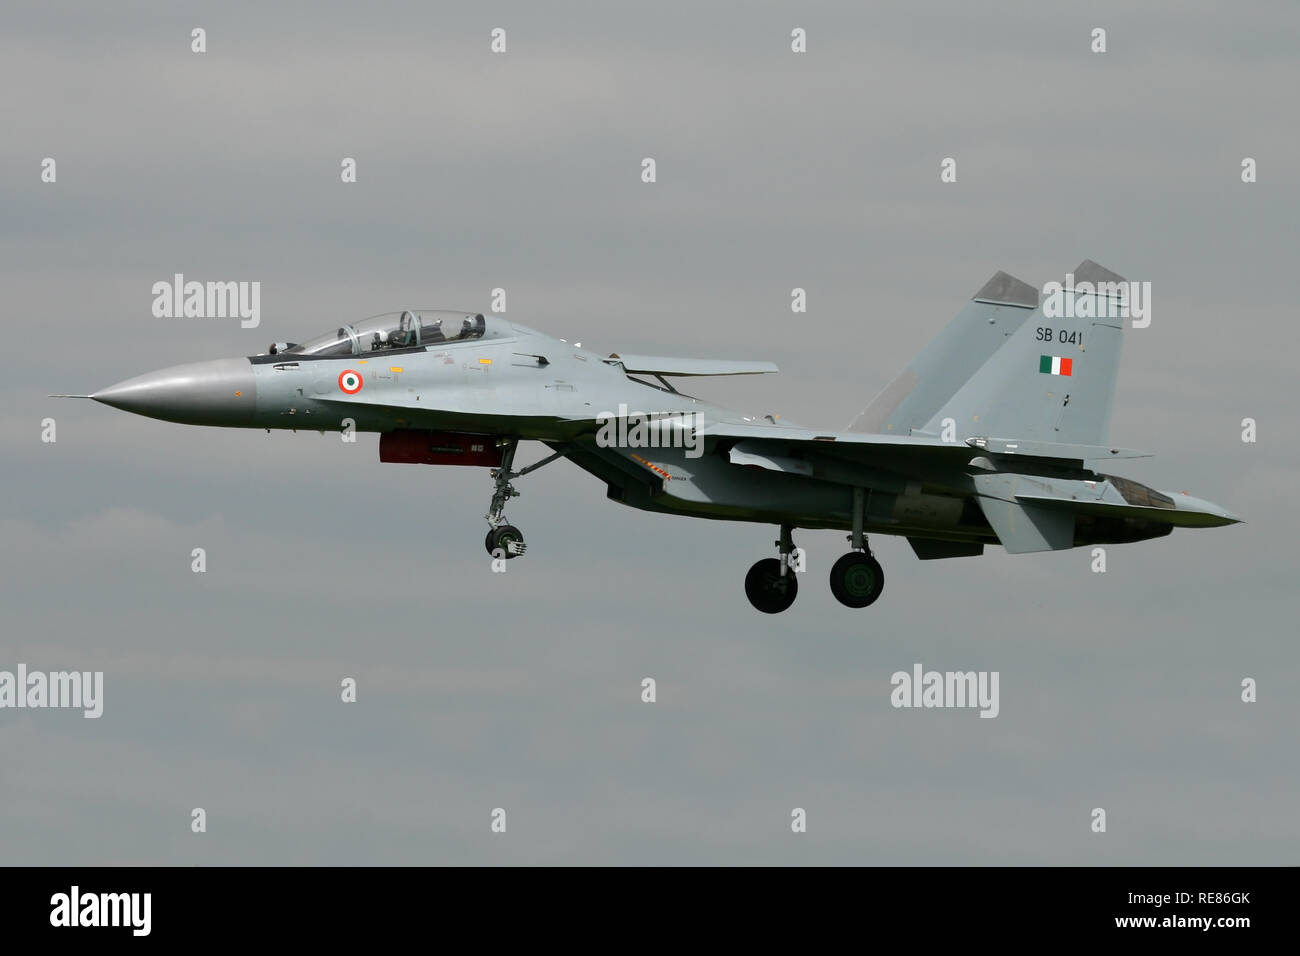 Indian Air Force Sukhoi Su-30 MKI on the approach at RAF Waddington during Exercise Indra Dhanush 07. The first deployment of the type to the UK. - Stock Image